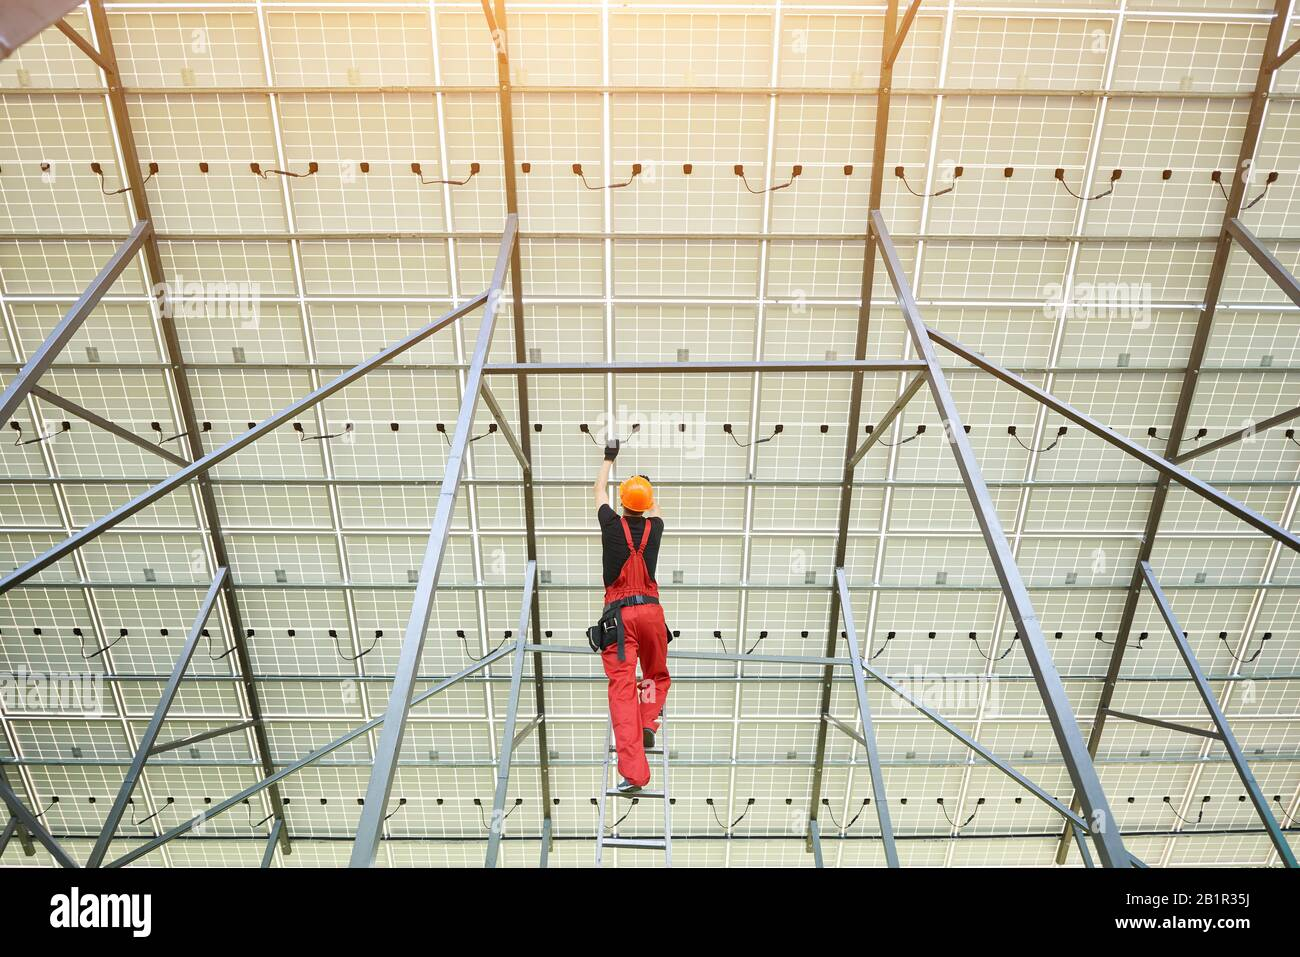 Installing and wiring of solar photo voltaic panels. Back view of worker in orange uniform connecting solar panels at the station. Ecology power conservation concept. Stock Photo